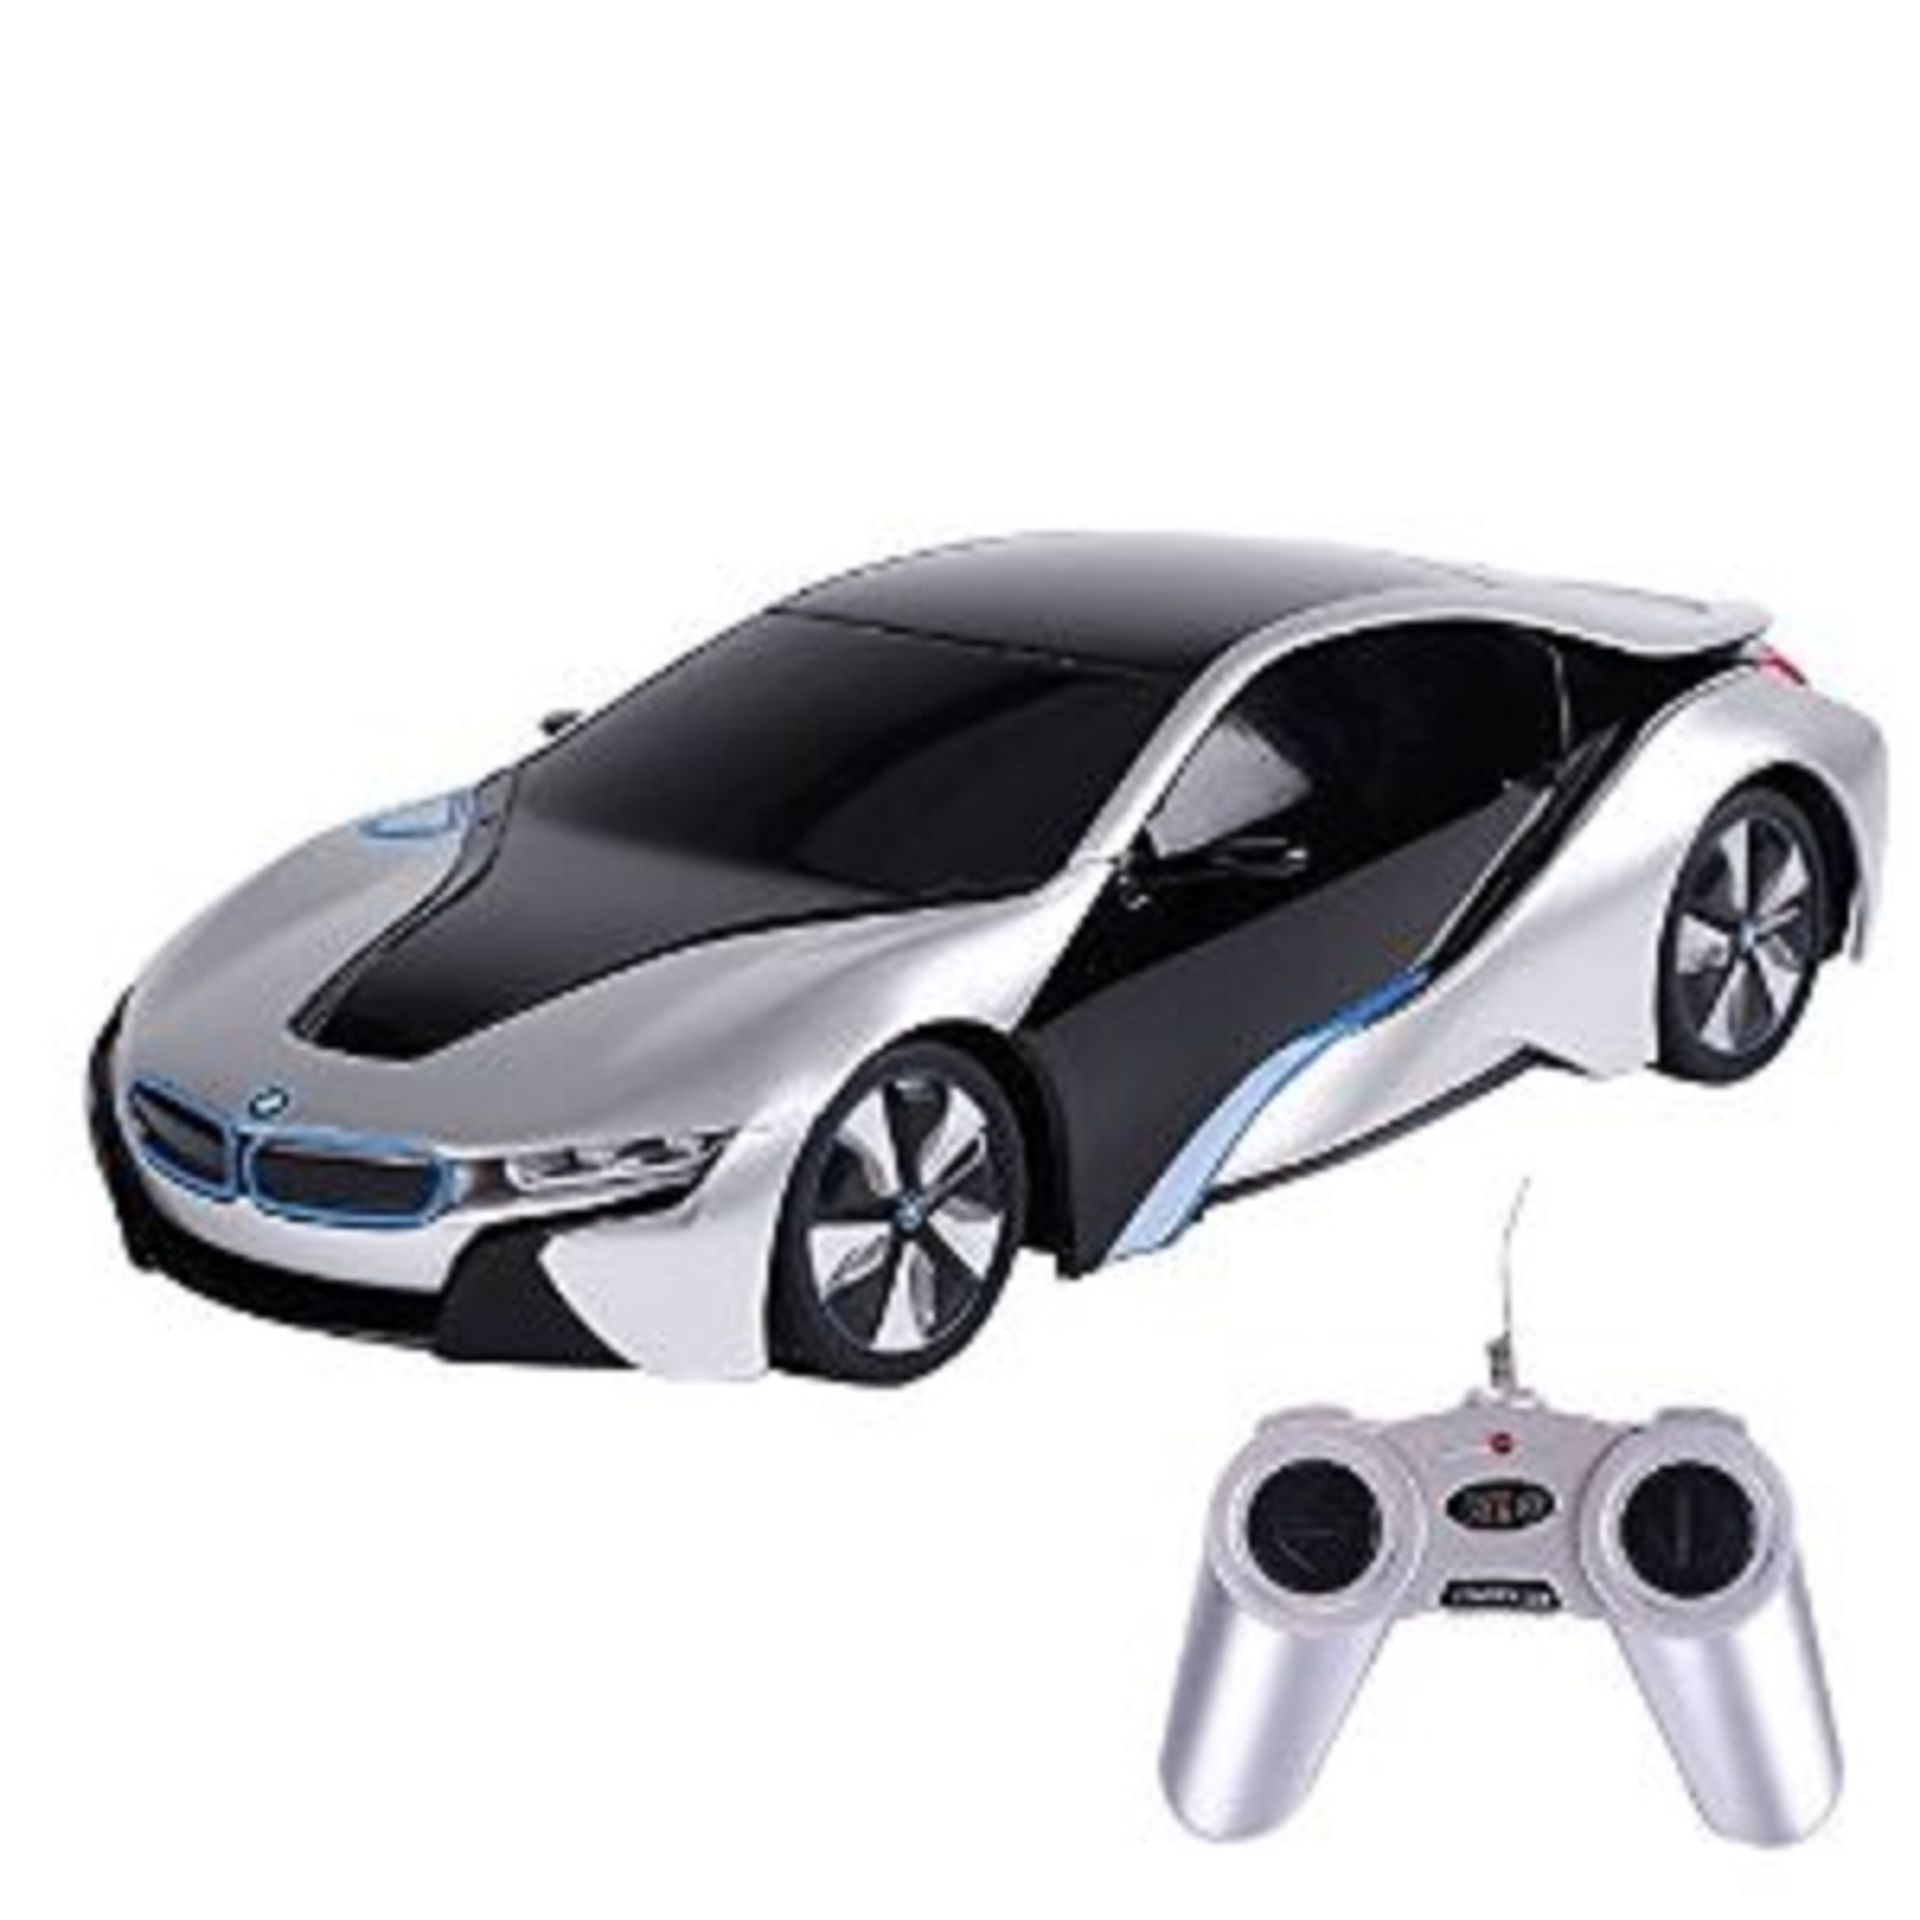 Lot 12410 - V Brand New Officially Licensed R/C 1:24 BMW I8 - White - eBay Price £41.00